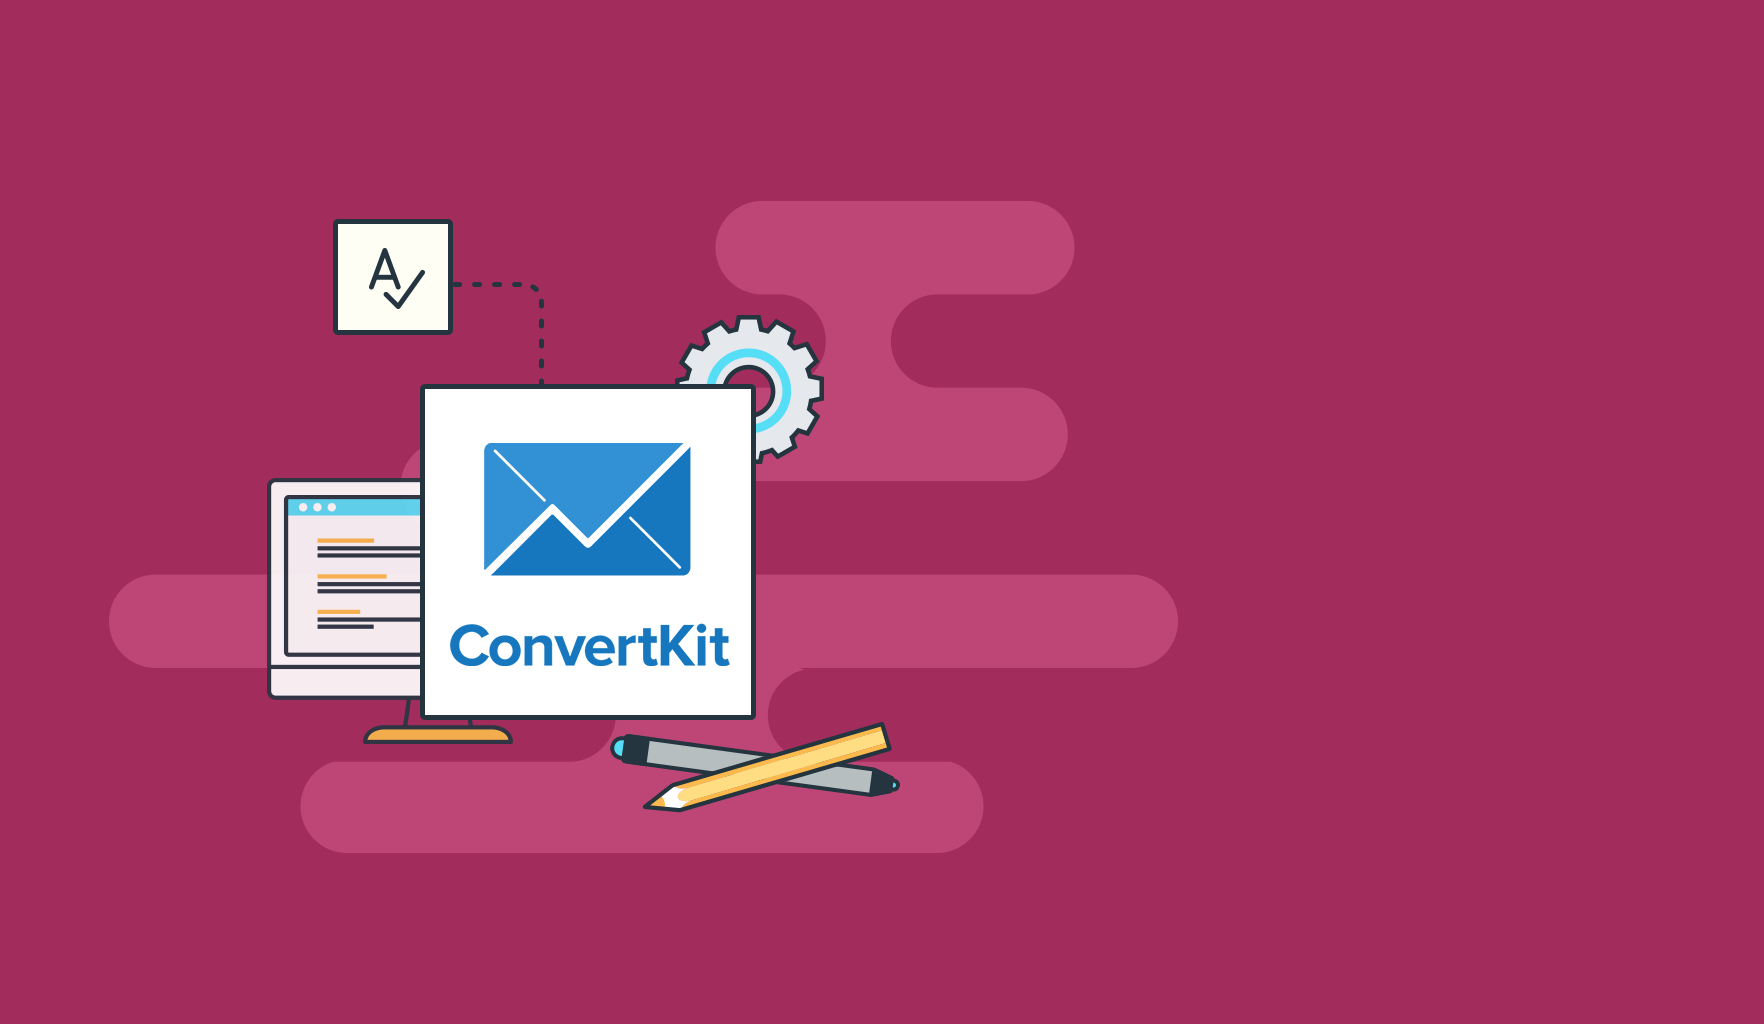 Discount Voucher Code Printable May 2020 Convertkit Email Marketing